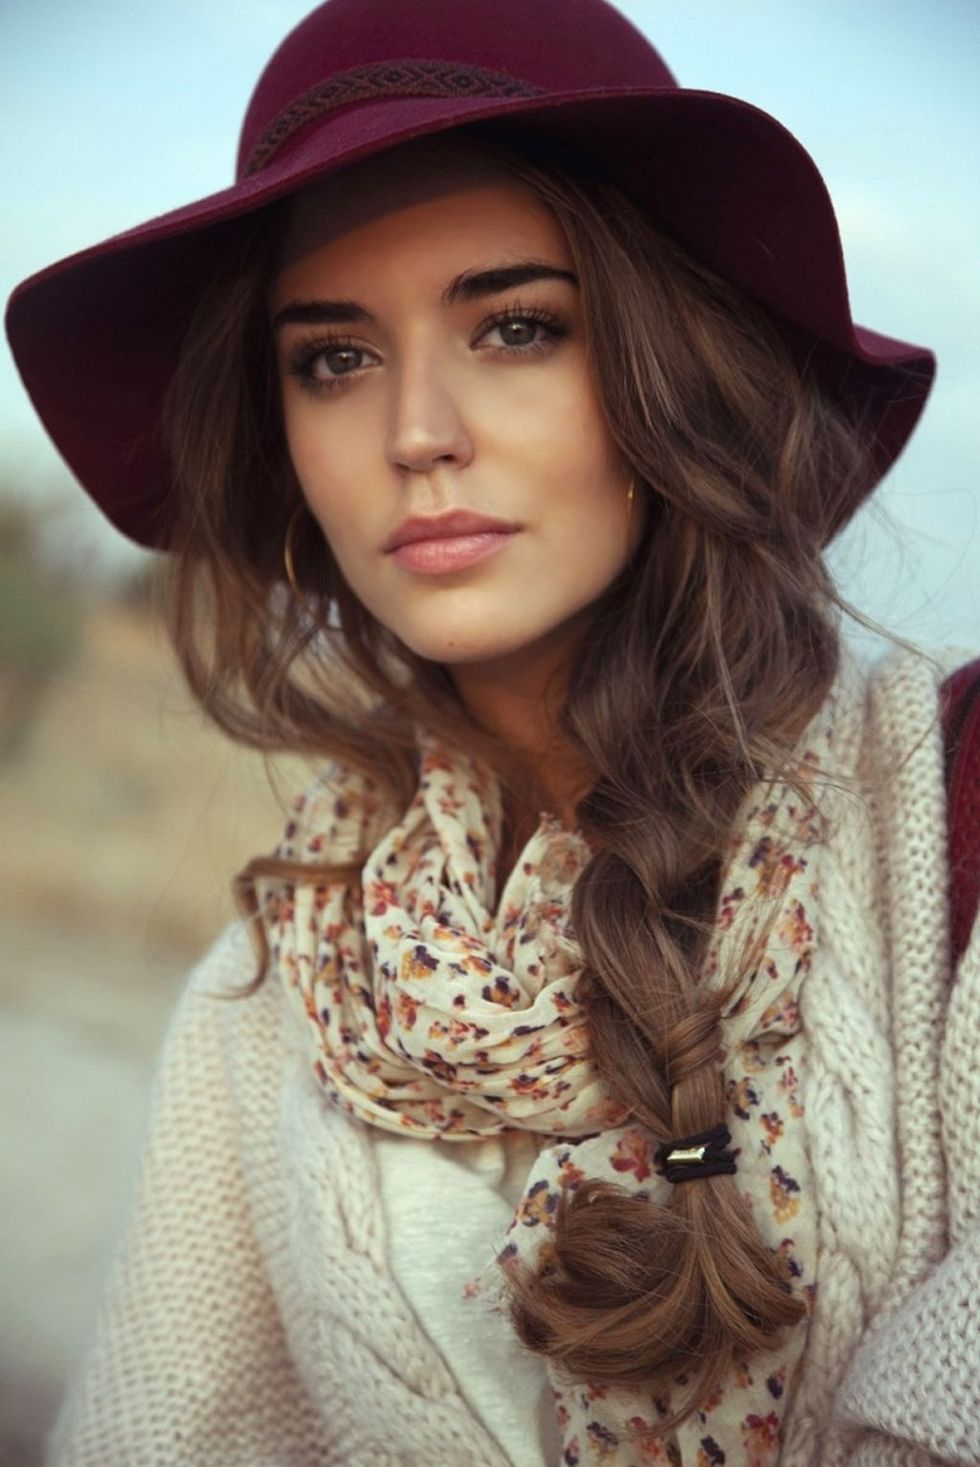 Fashionable Women Hats For Winter And Snow Outfits 46 -9676